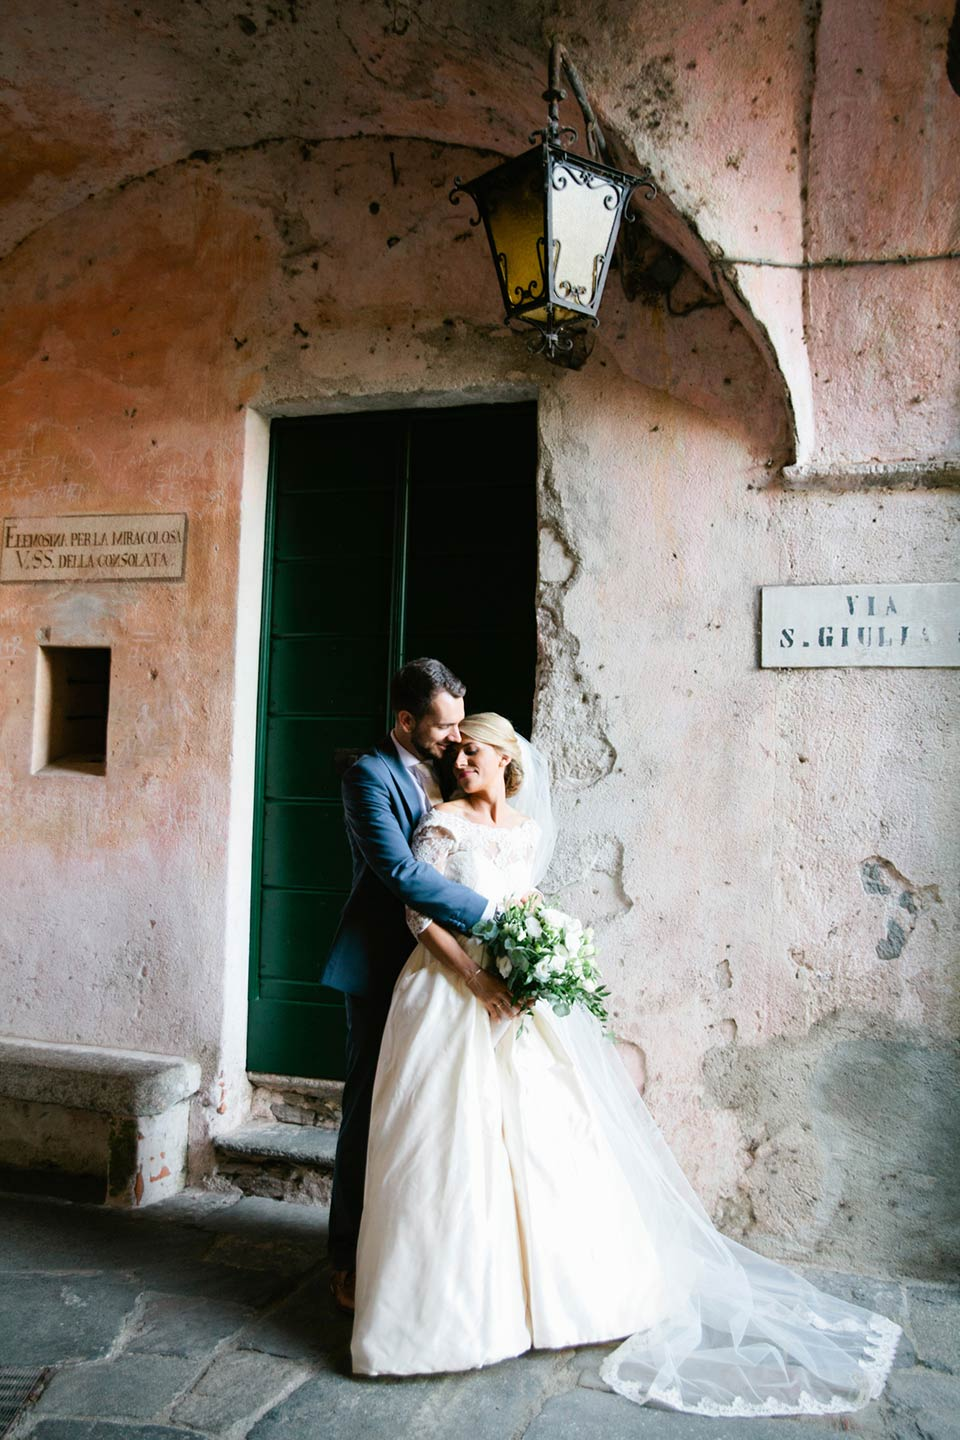 OUR WEDDINGS IN ITALY for AUGUST 2016